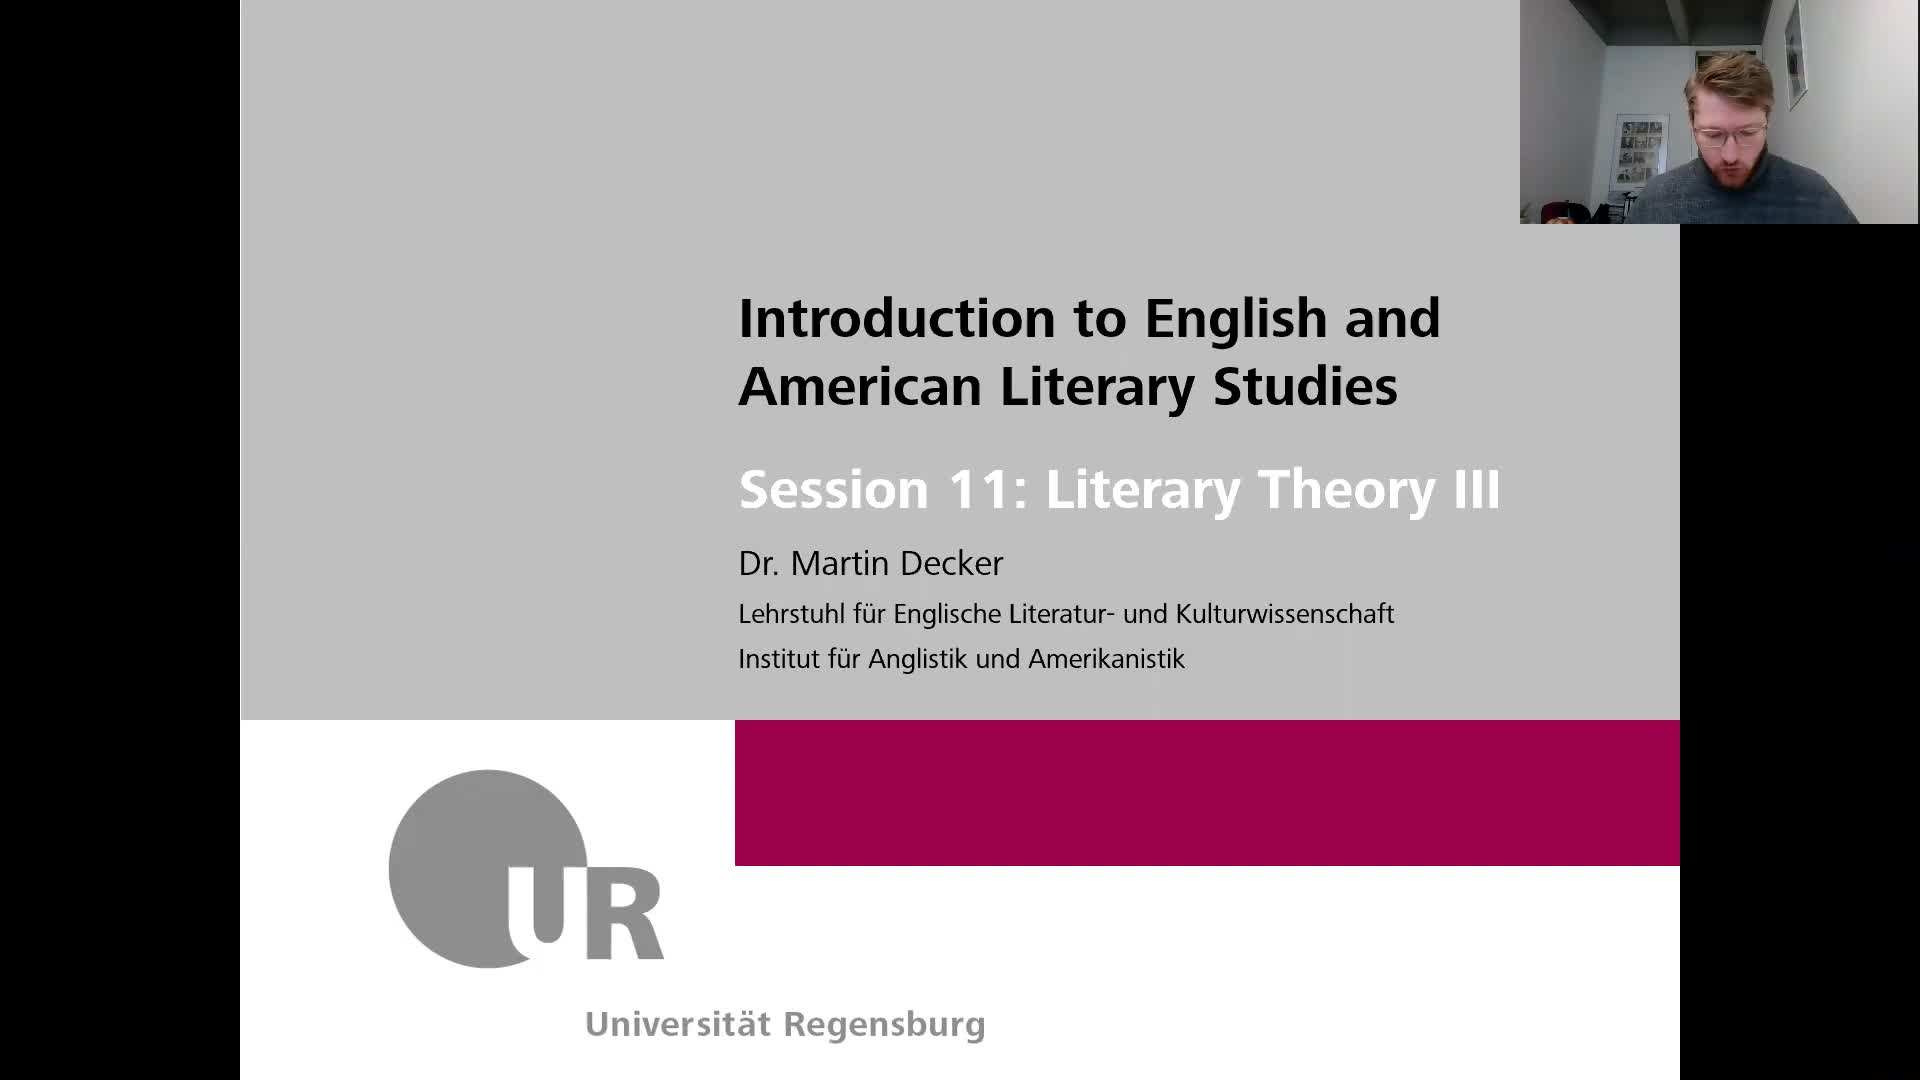 Introduction to English and American Literary Studies - LECTURE - Session 11